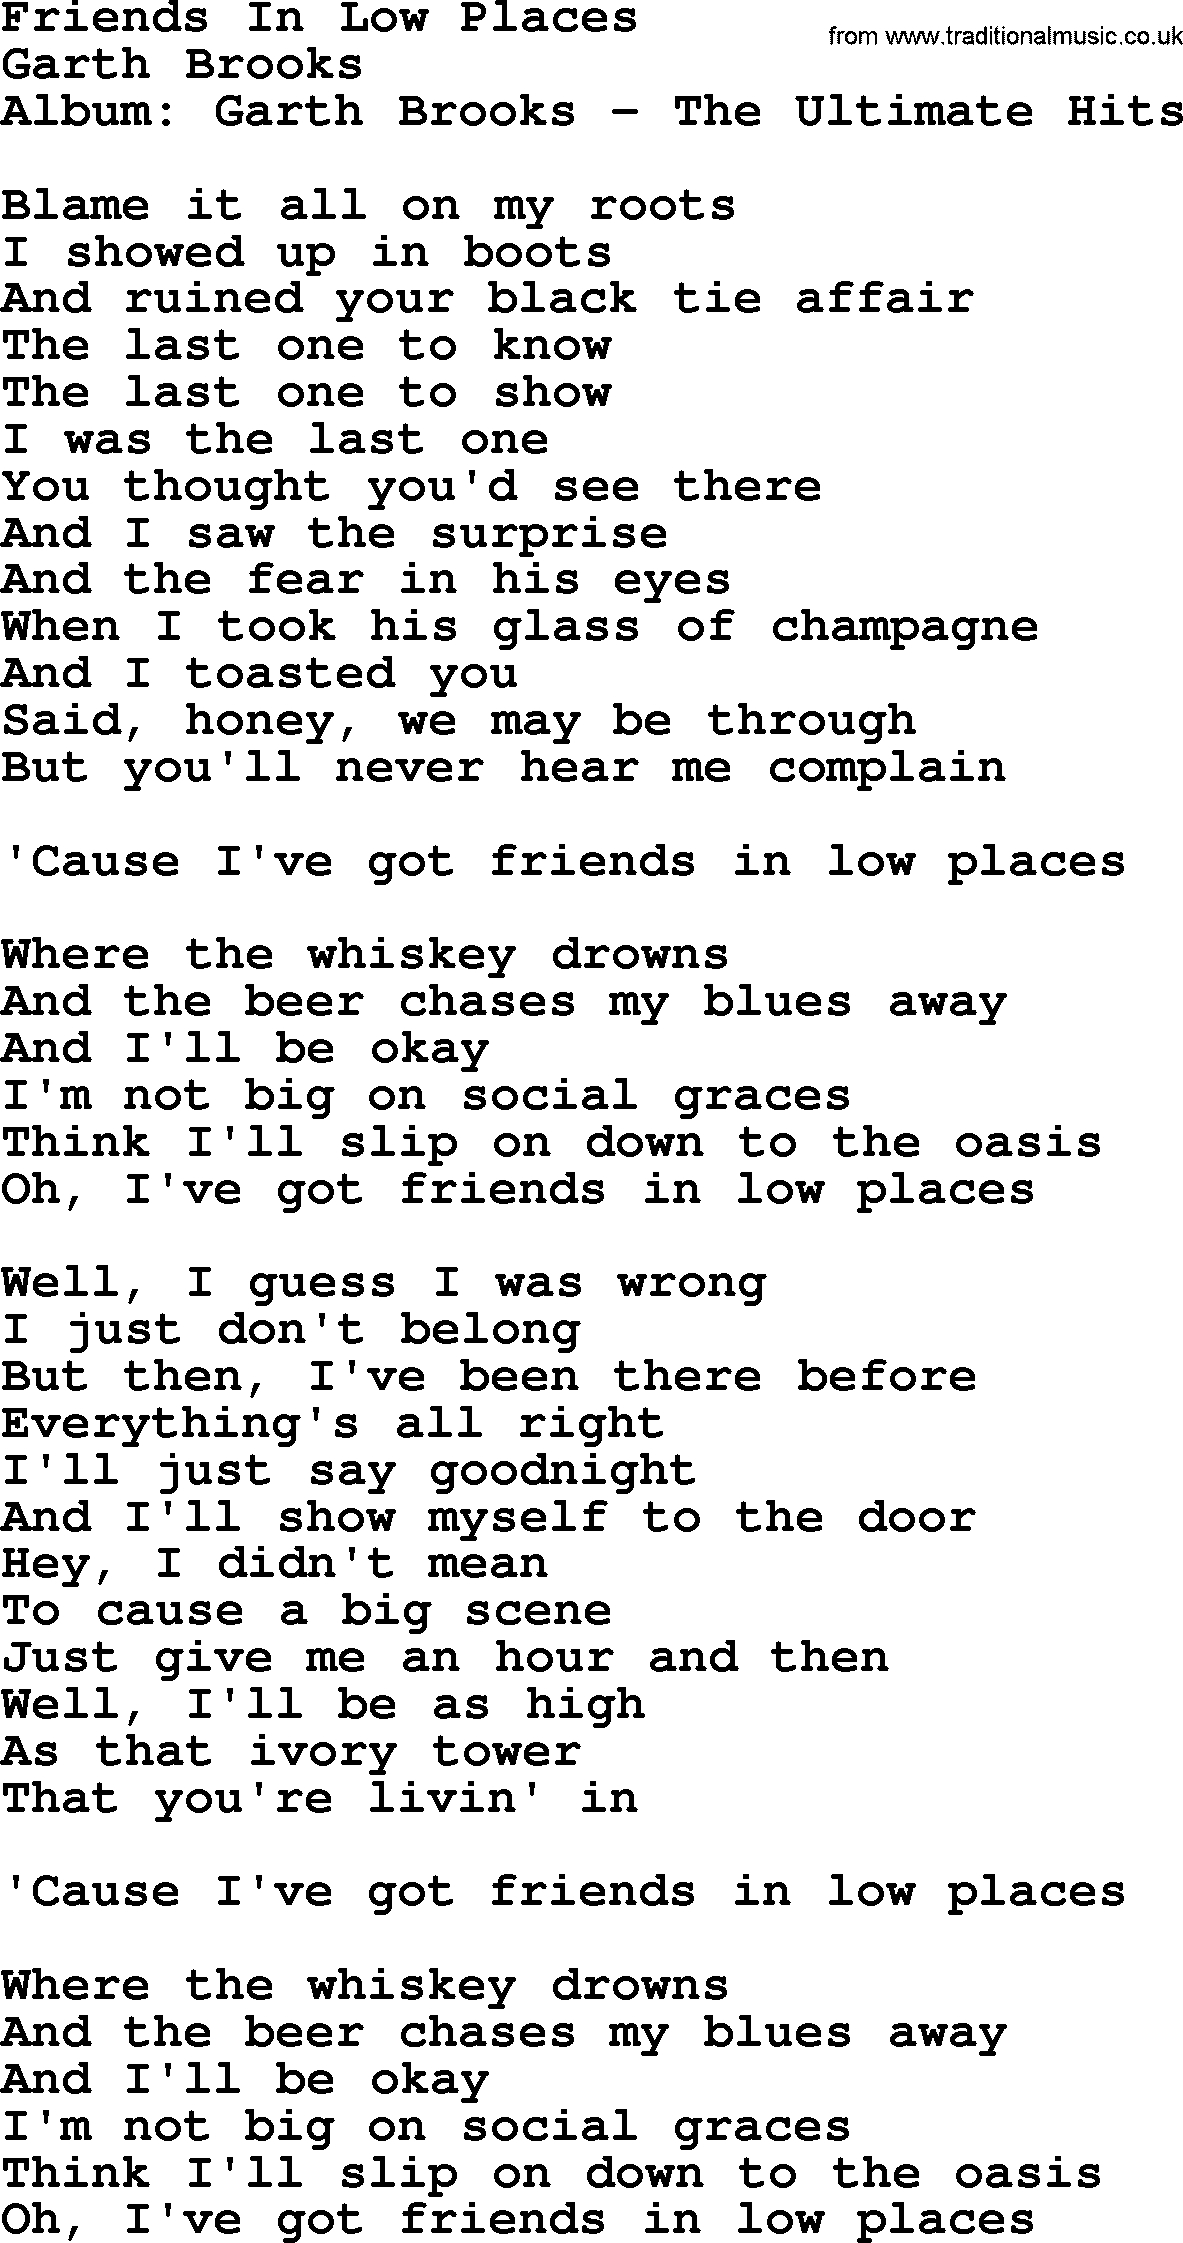 Friends In Low Places Chords Friends In Low Places Garth Brooks Lyrics